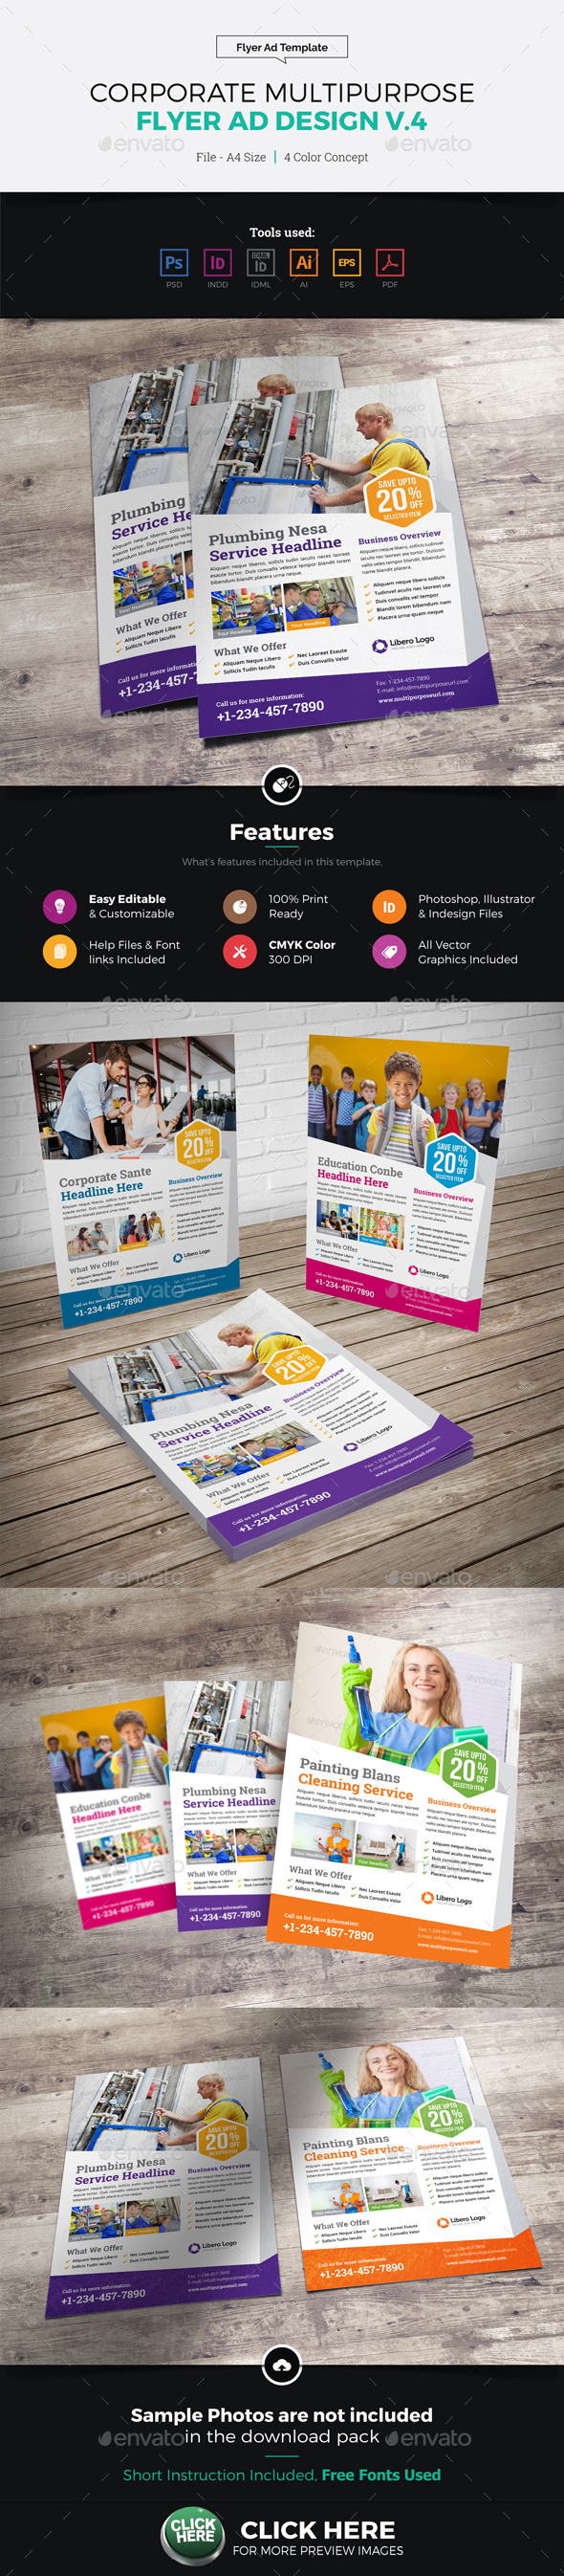 Corporate Multipurpose Flyer Ad Design v4 - Corporate Flyers